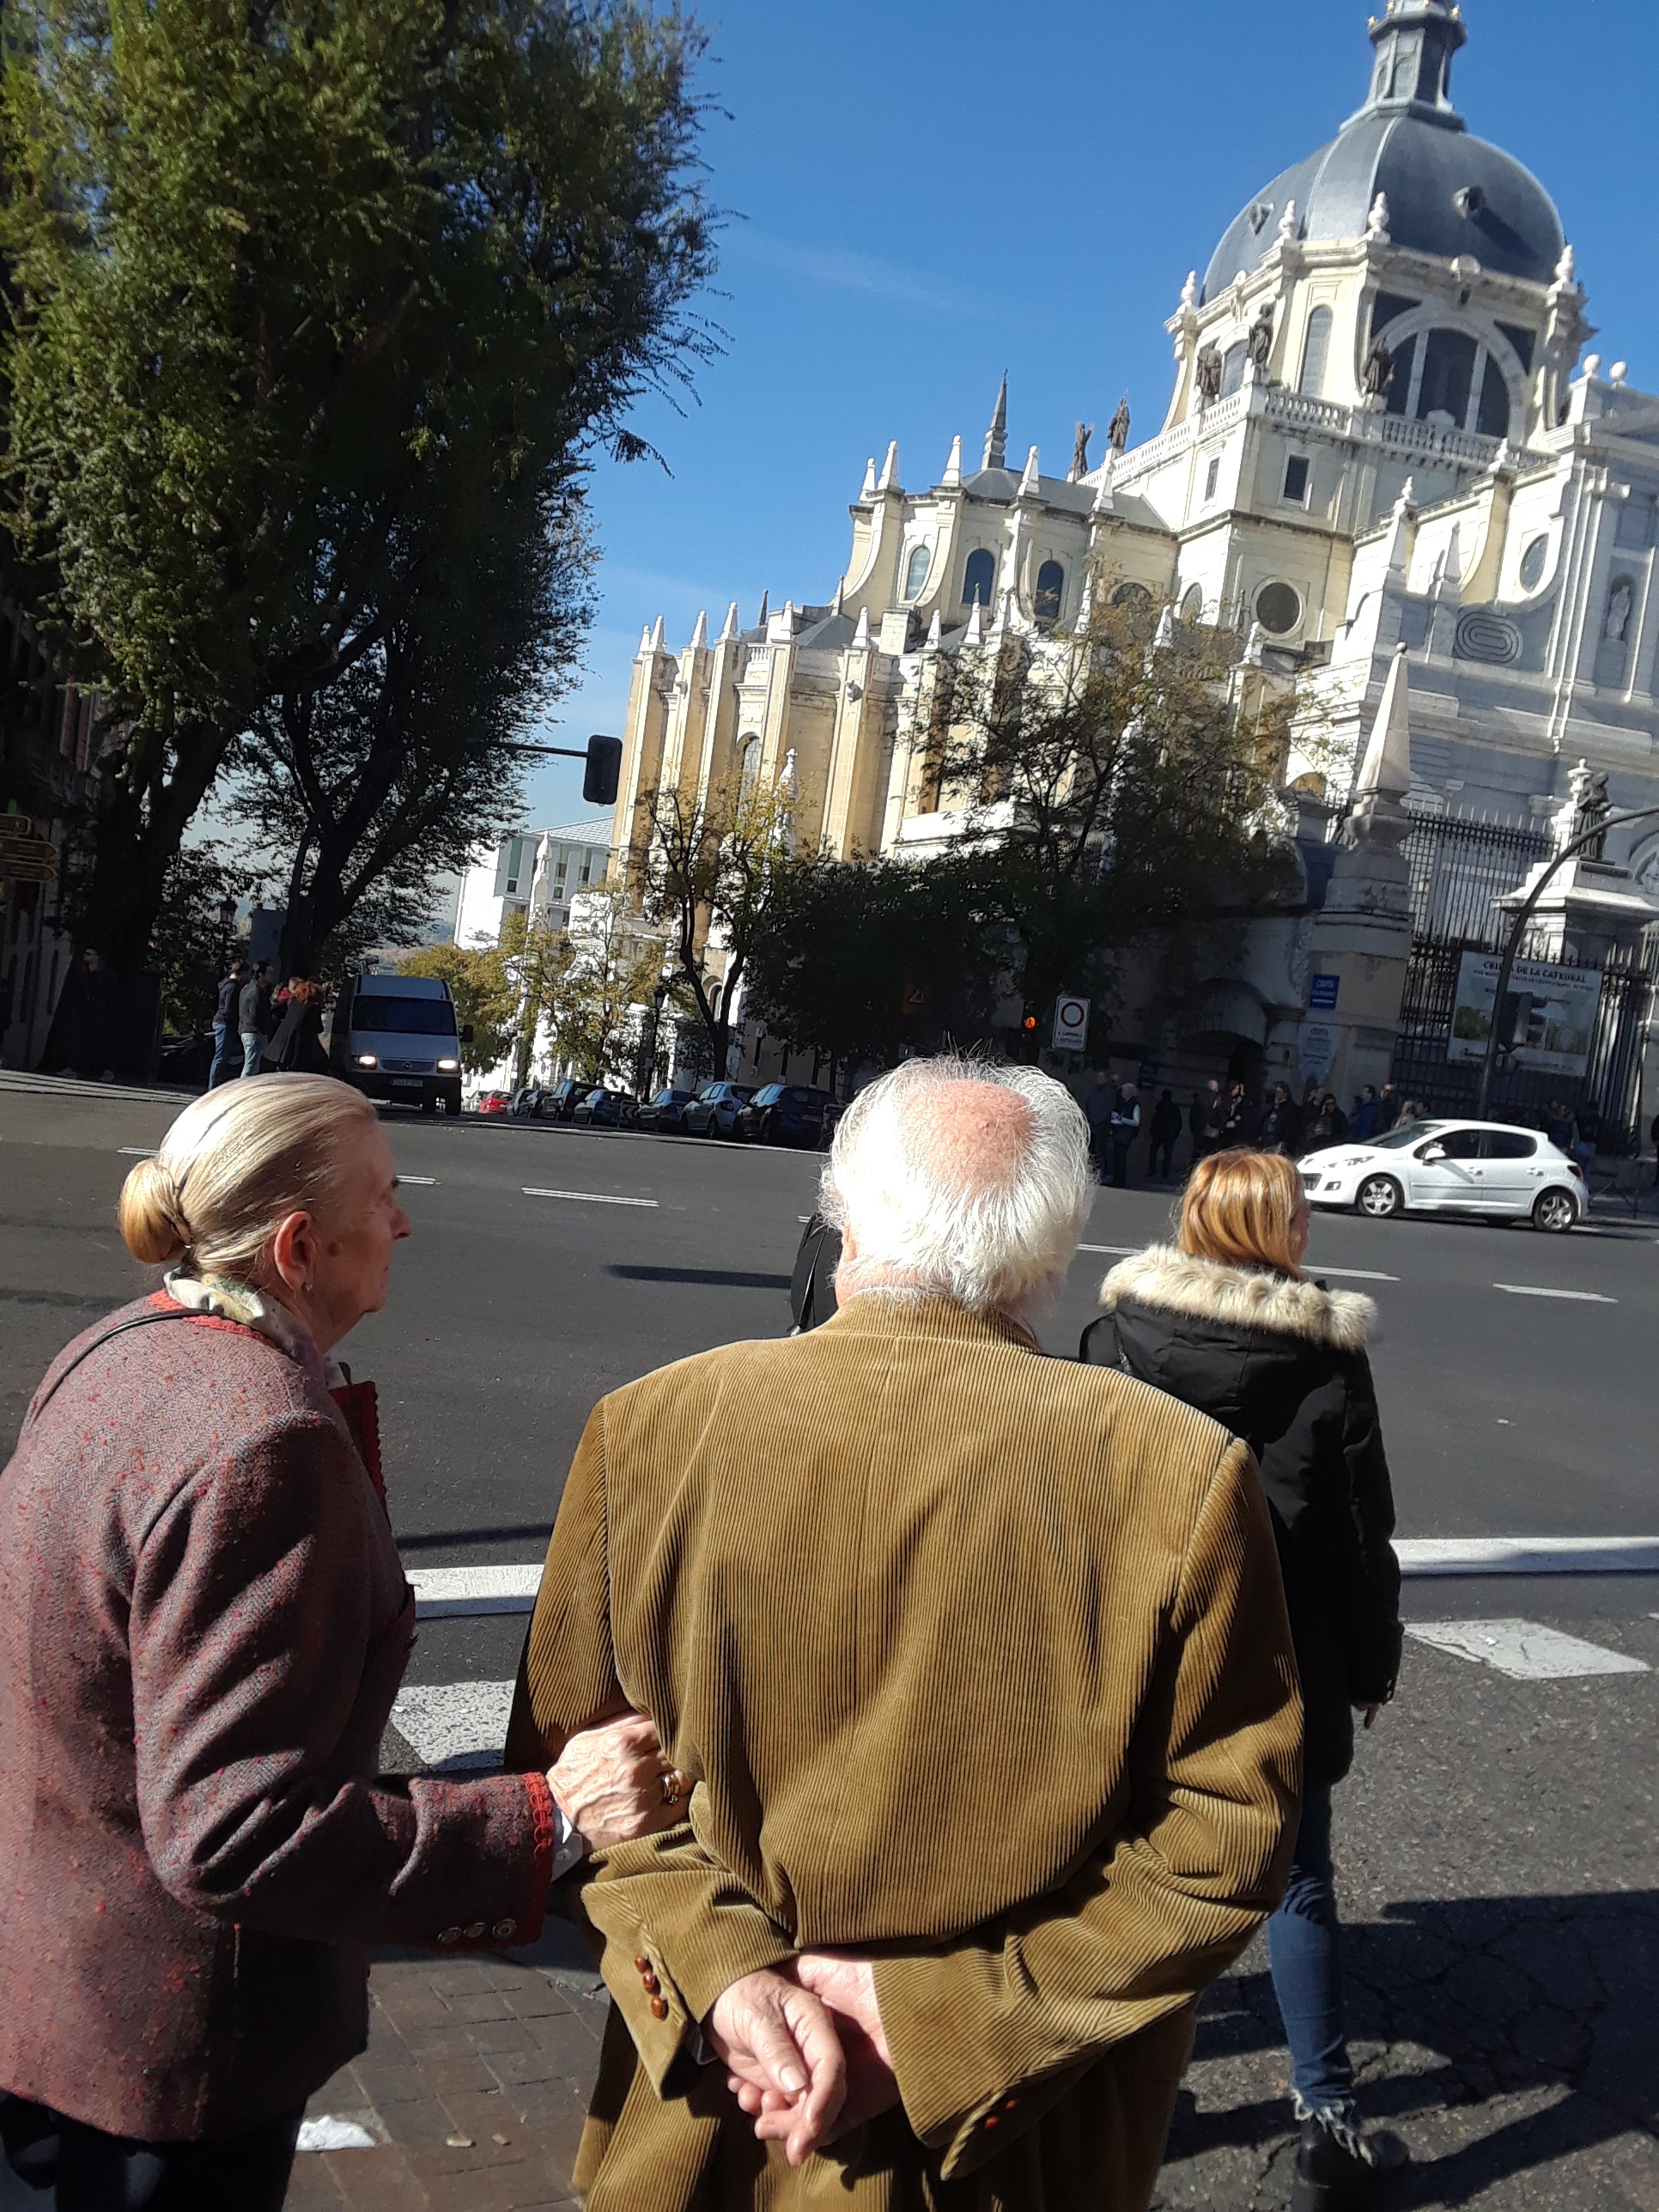 An older couple passes the long-incomplete church.